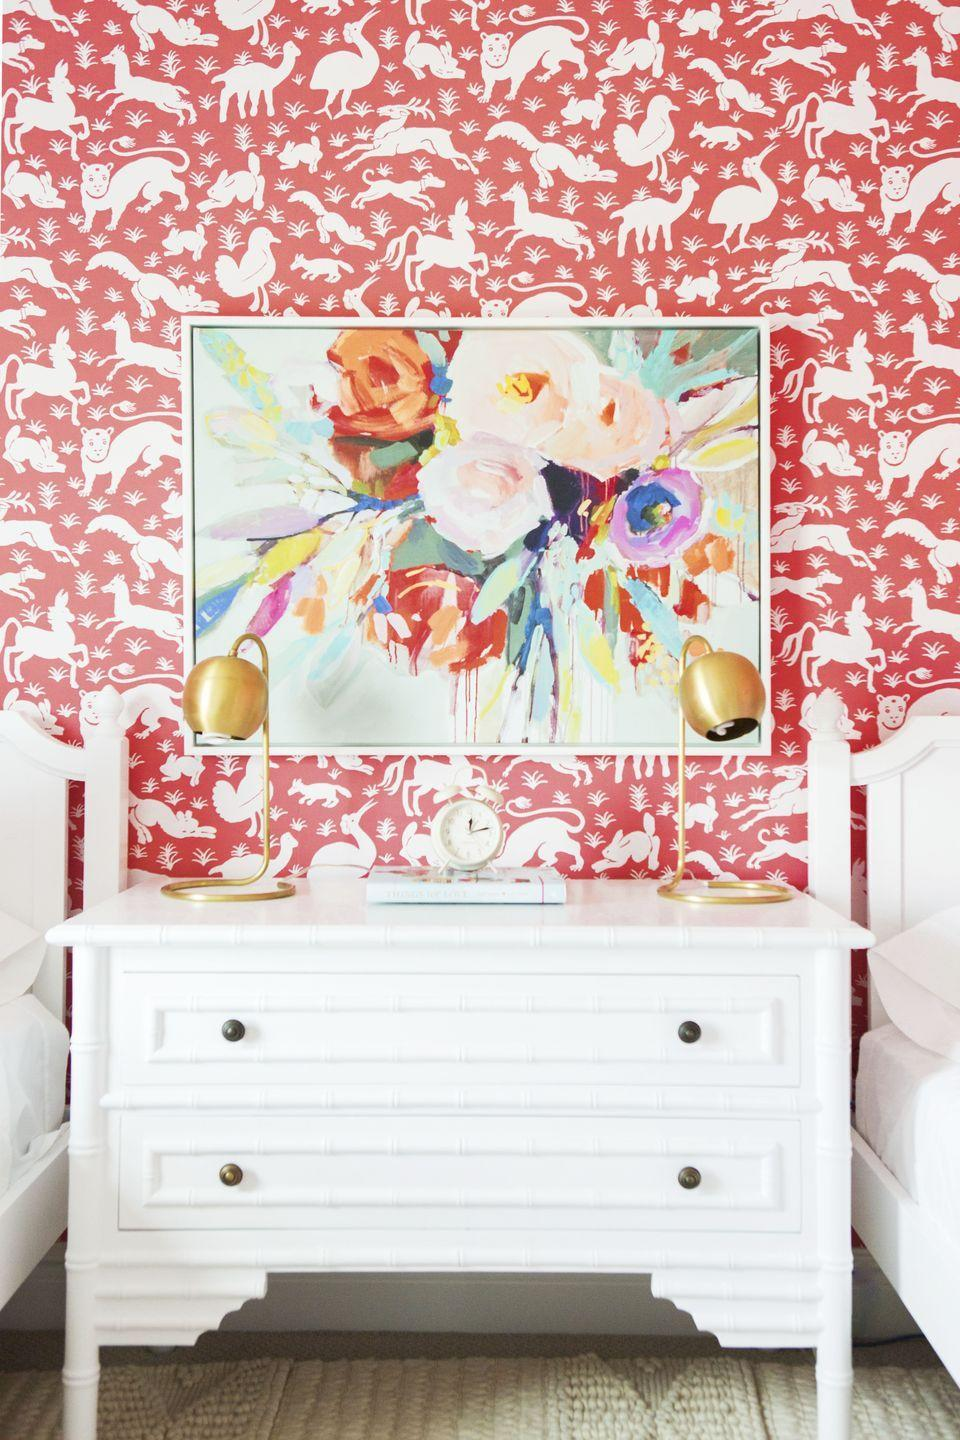 "<p>Traditional white furniture can stand up to a poppy print. Today's removable wallpapers also make bold designs commitment-free. </p><p><a class=""link rapid-noclick-resp"" href=""https://go.redirectingat.com?id=74968X1596630&url=https%3A%2F%2Fwww.anthropologie.com%2Fremovable-wallpaper&sref=https%3A%2F%2Fwww.goodhousekeeping.com%2Fhome%2Fdecorating-ideas%2Fg770%2Fdecor-ideas-master-bedroom%2F"" rel=""nofollow noopener"" target=""_blank"" data-ylk=""slk:SHOP WALLPAPER"">SHOP WALLPAPER</a></p>"